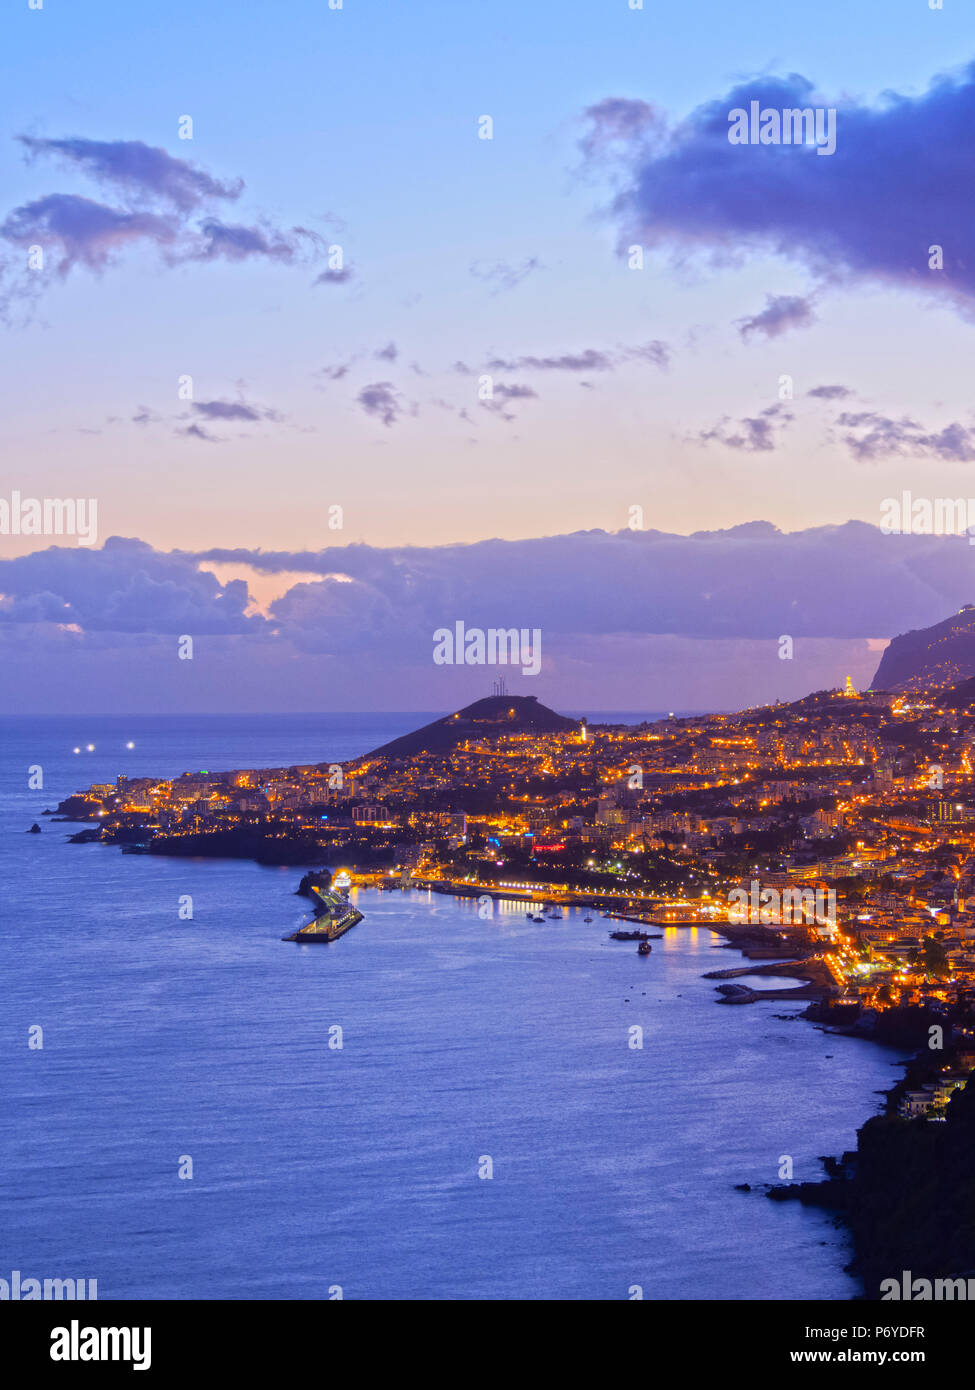 Portugal, Madeira, Funchal, Twilight view of Funchal. - Stock Image